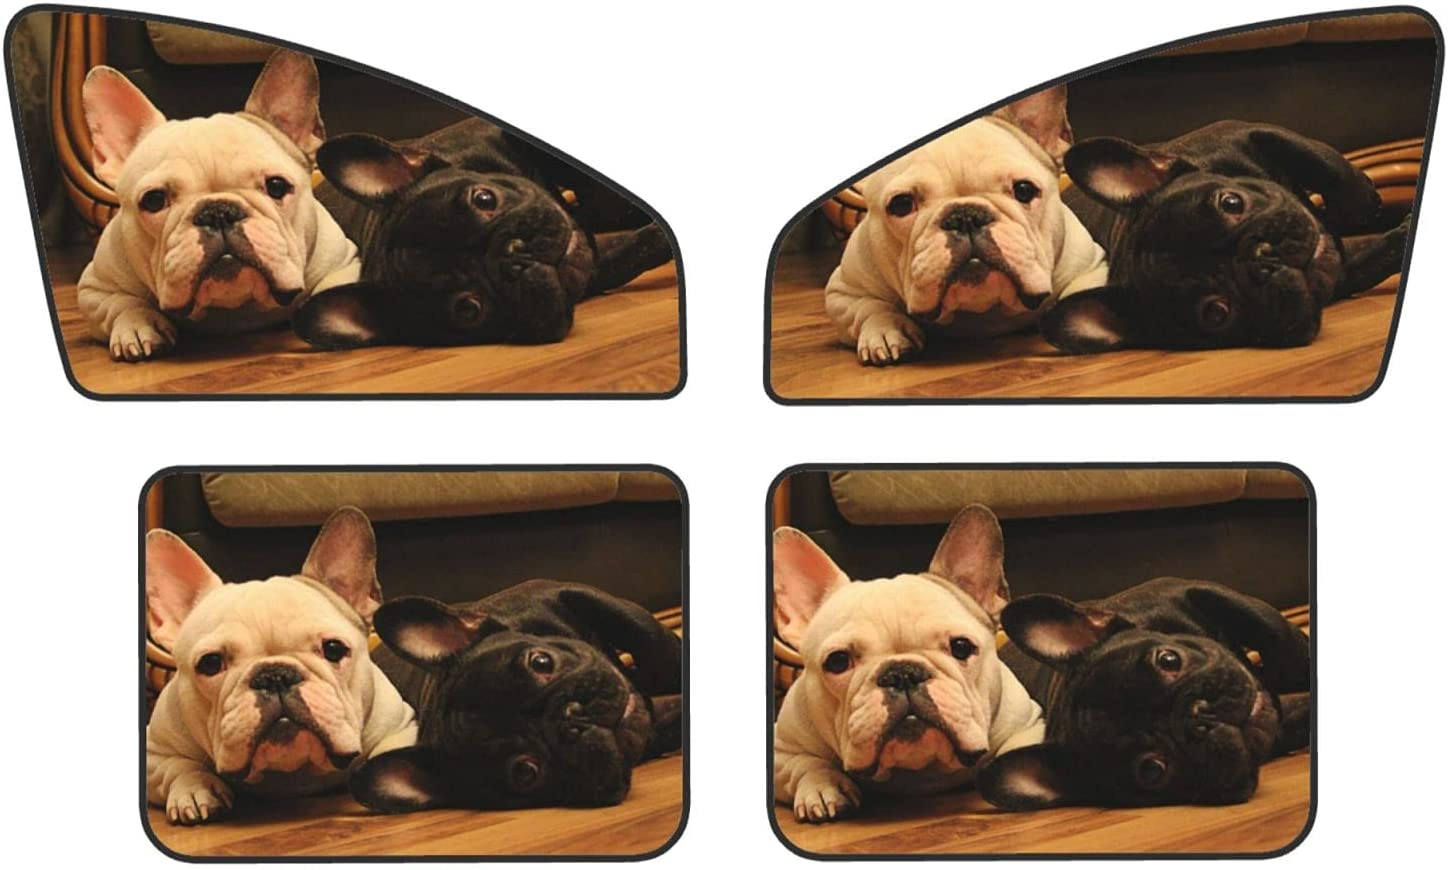 French Bulldog Car Magnets Protect Max 66% OFF Covers Privacy Sunshades New item Rear